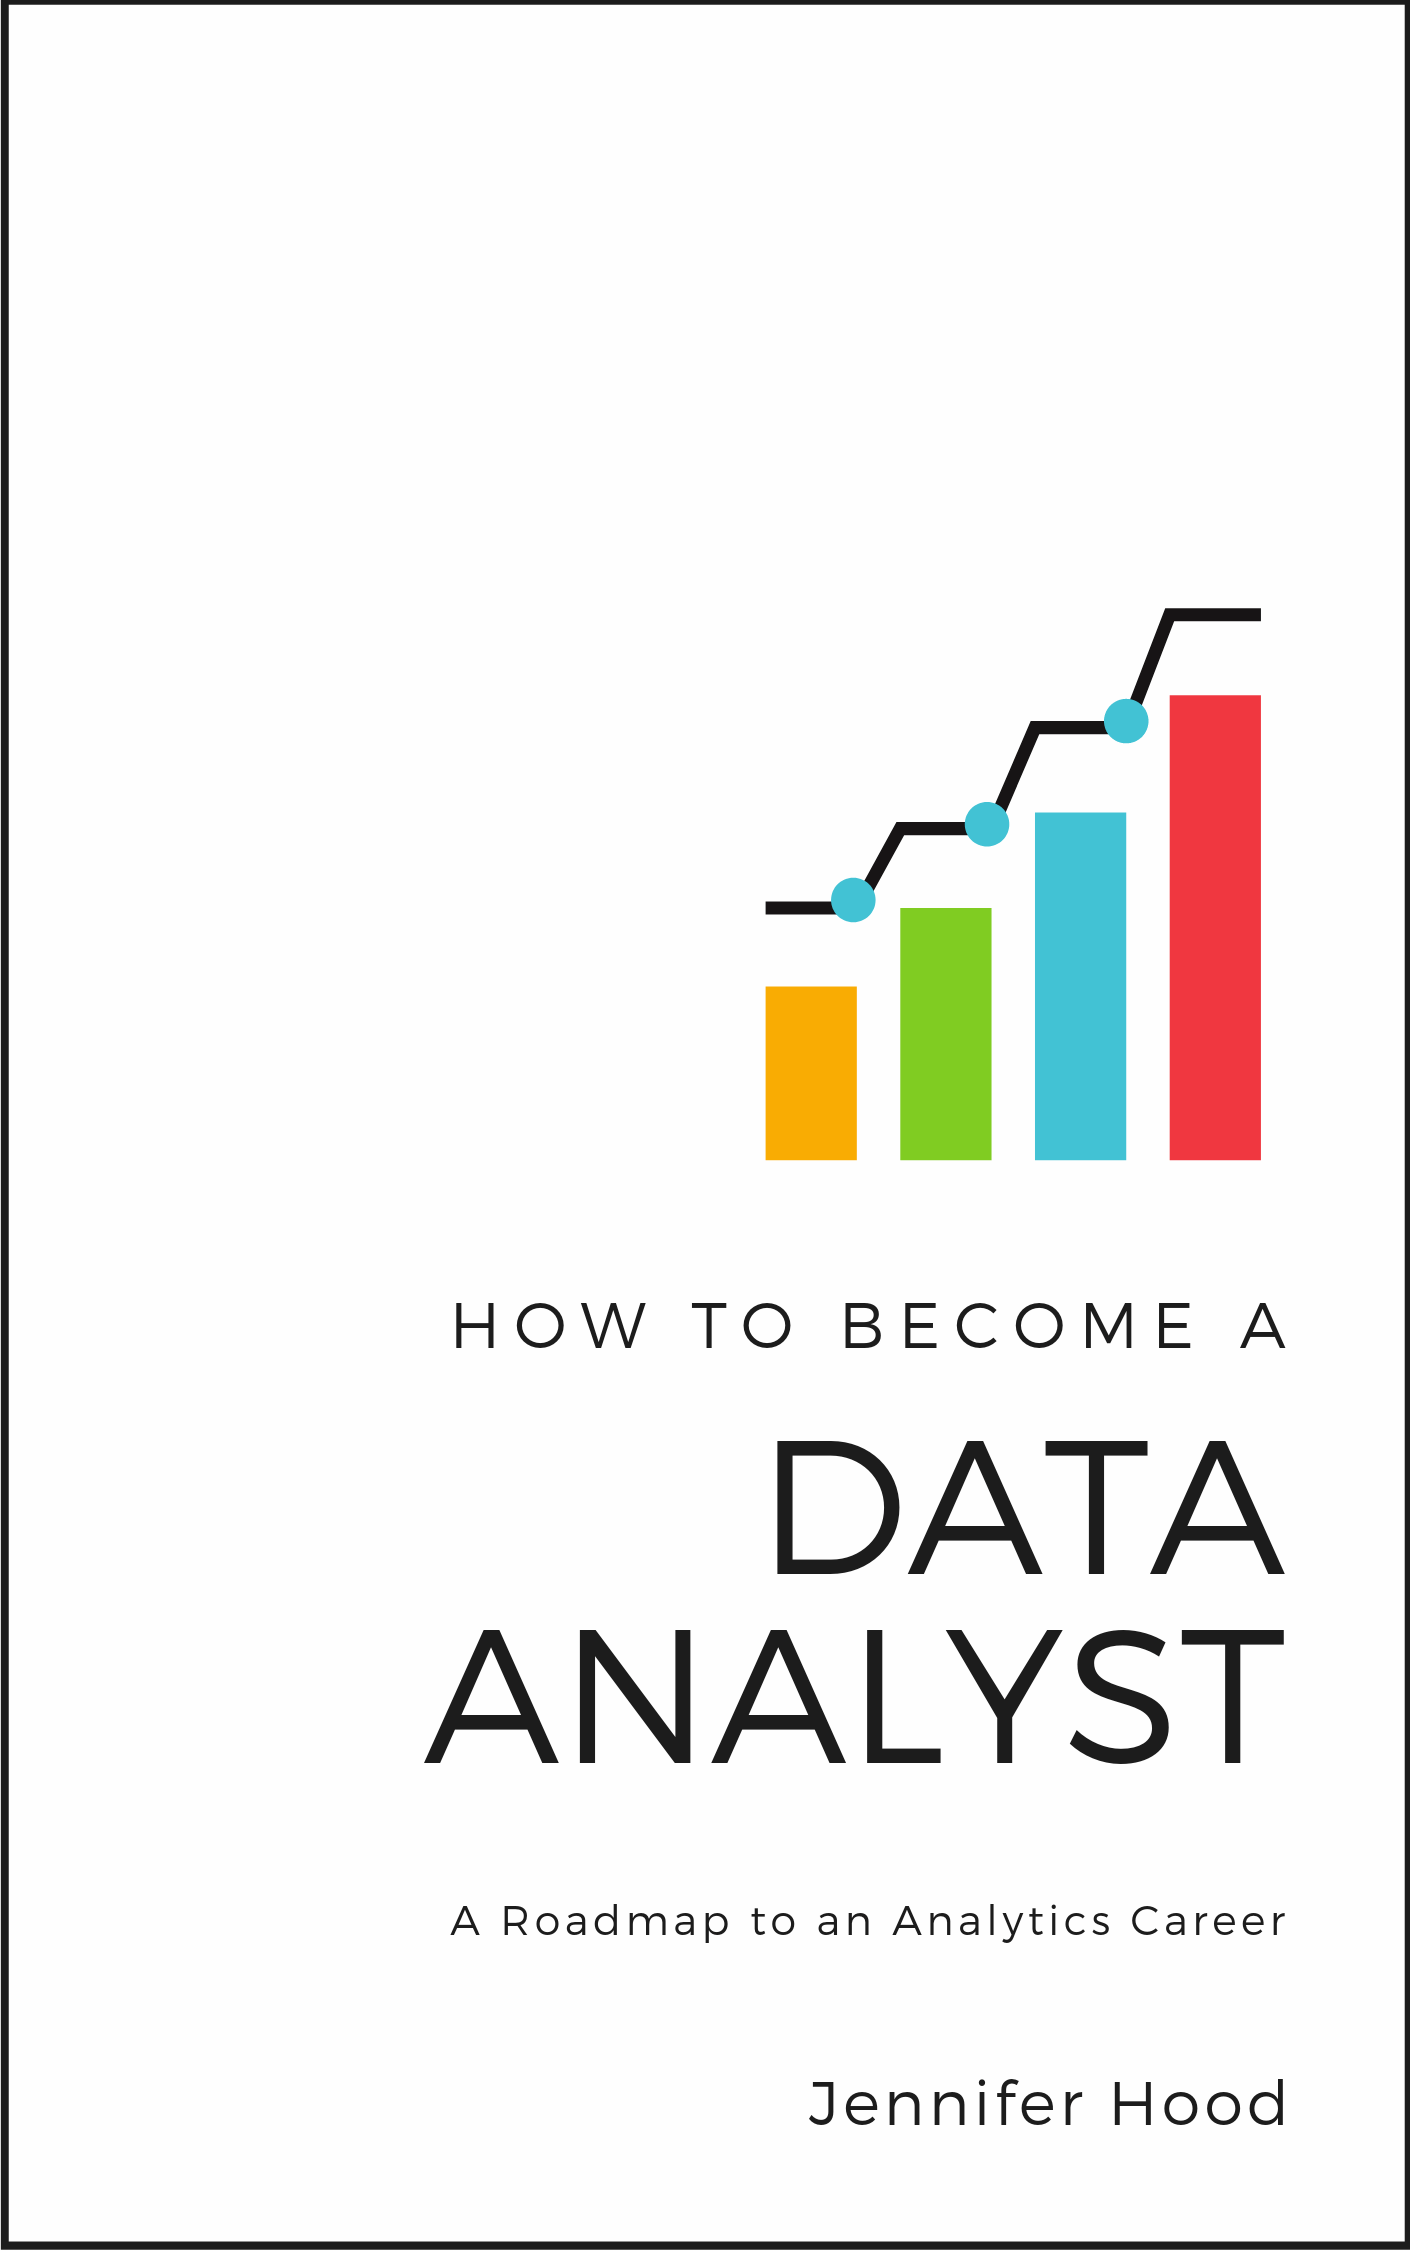 How to Become a Data Analyst